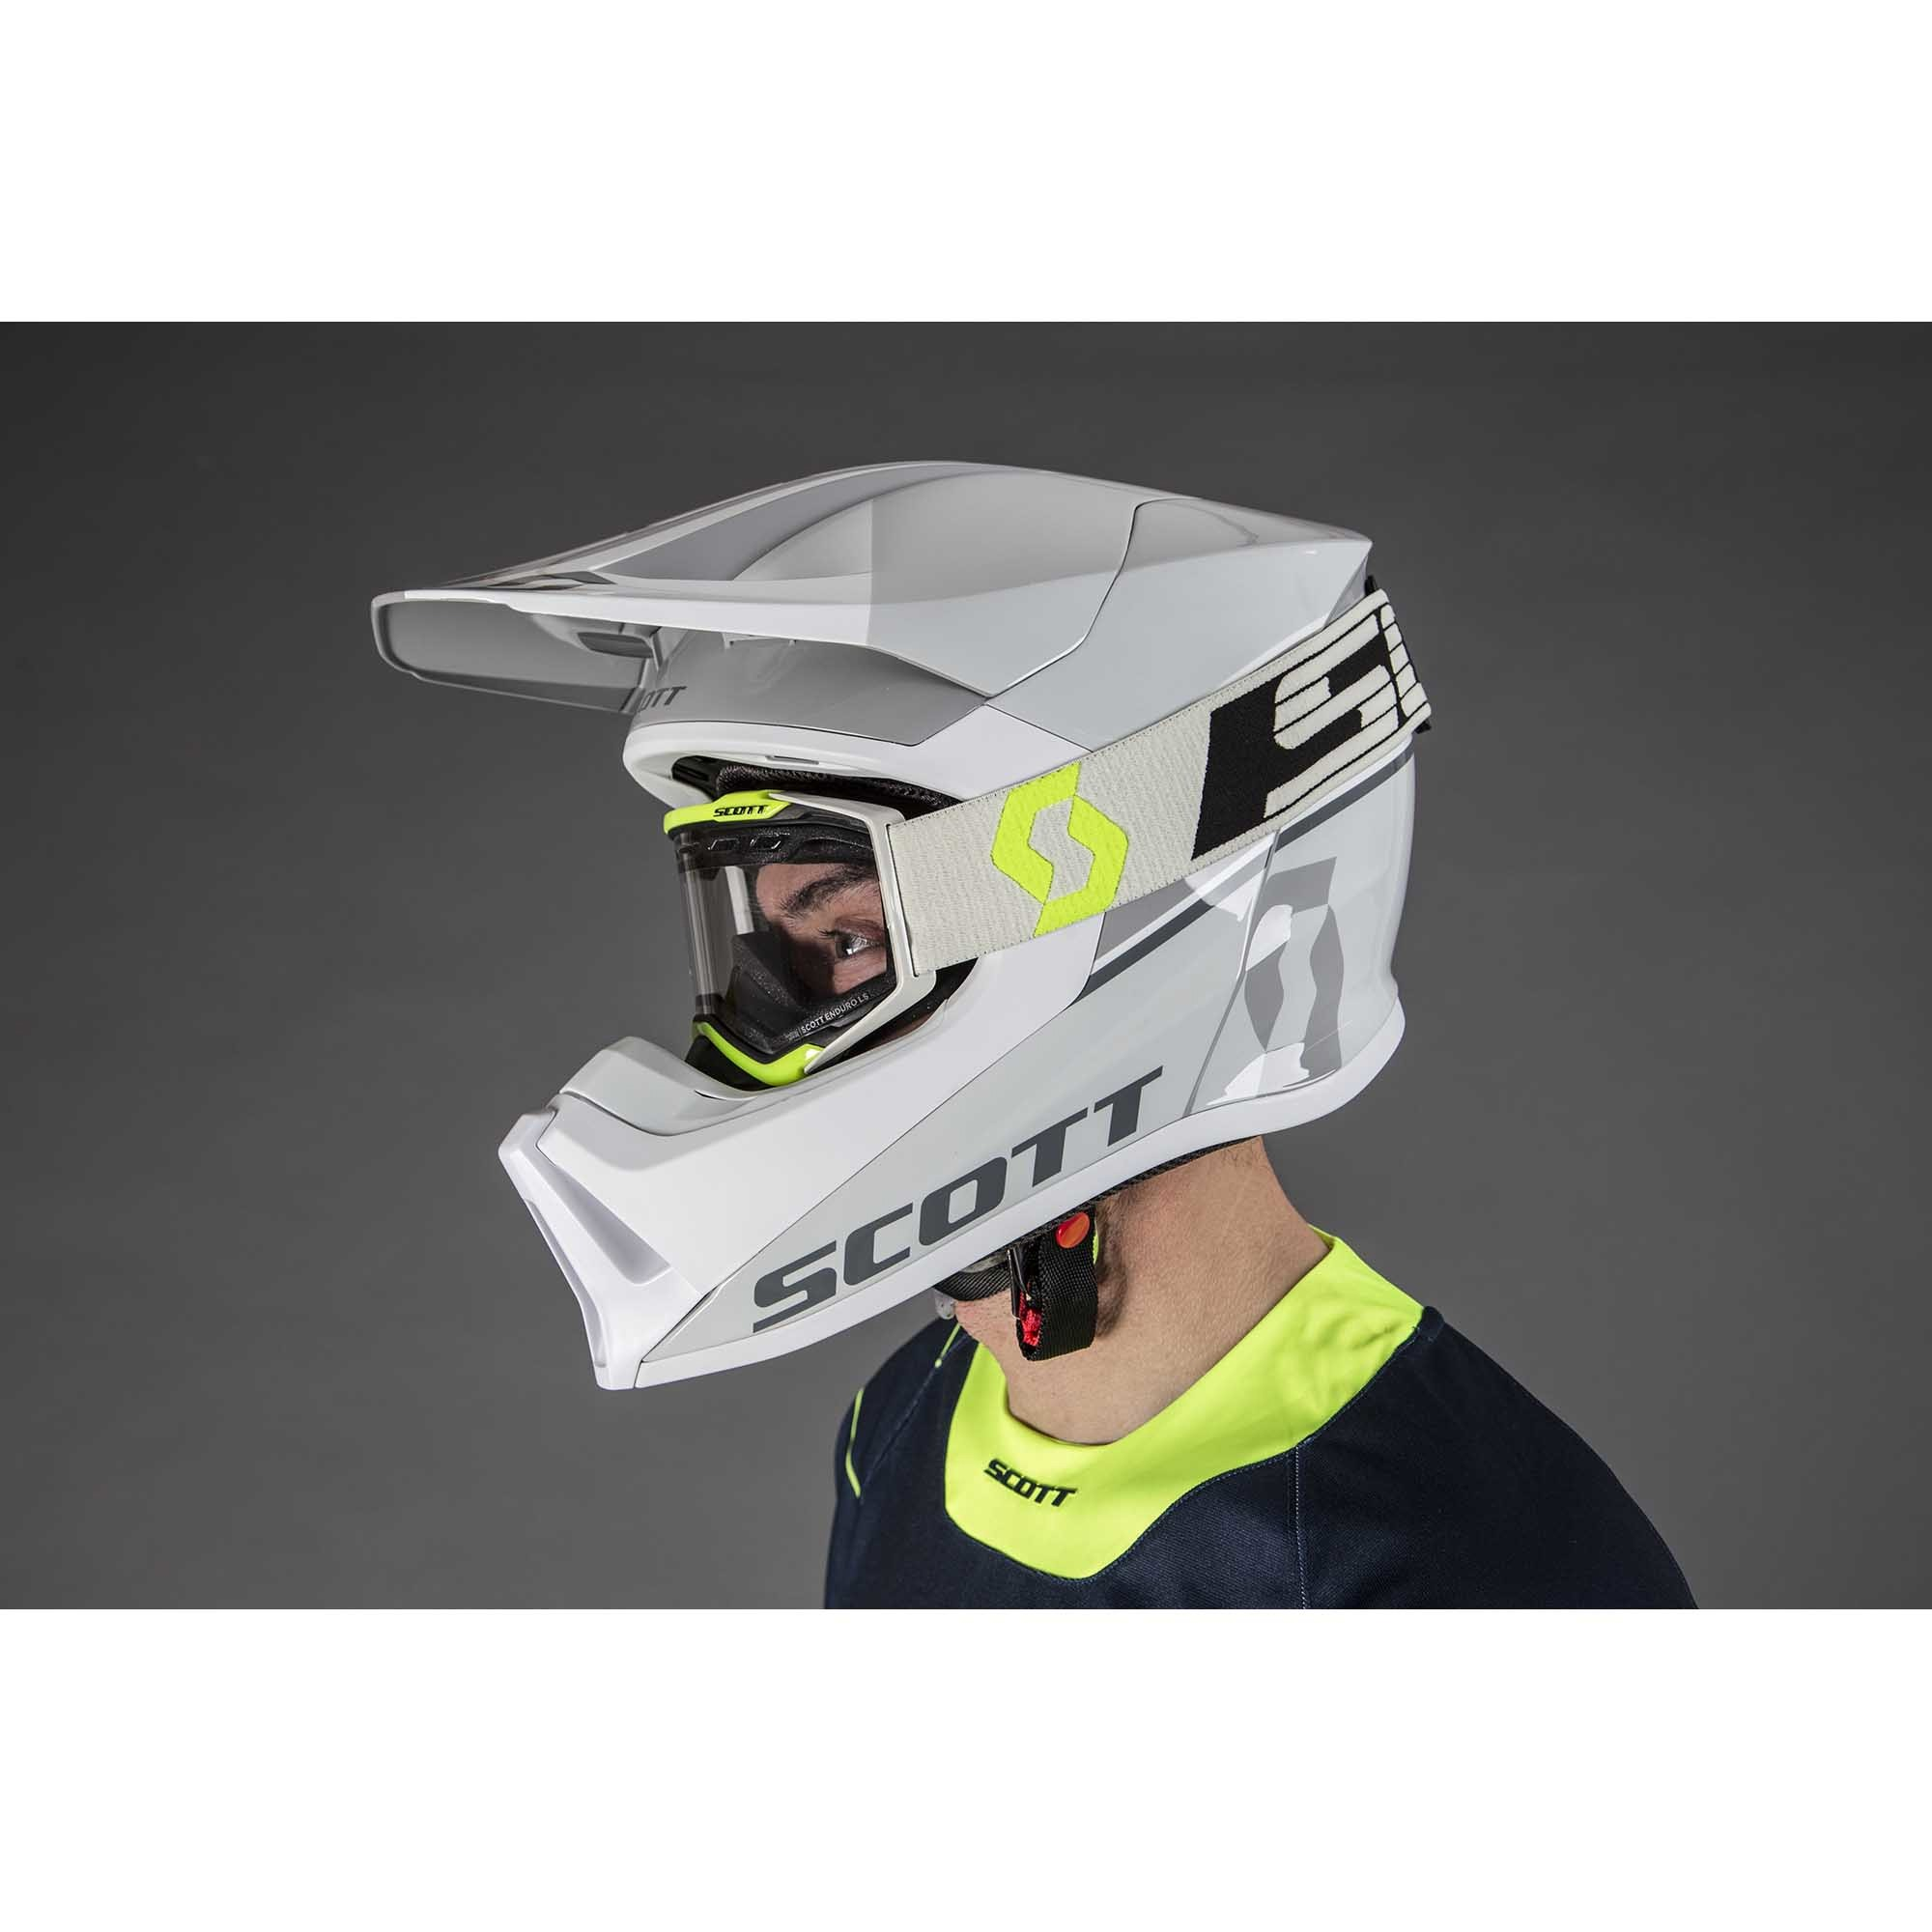 SCOTT 550 Split ECE Helmet